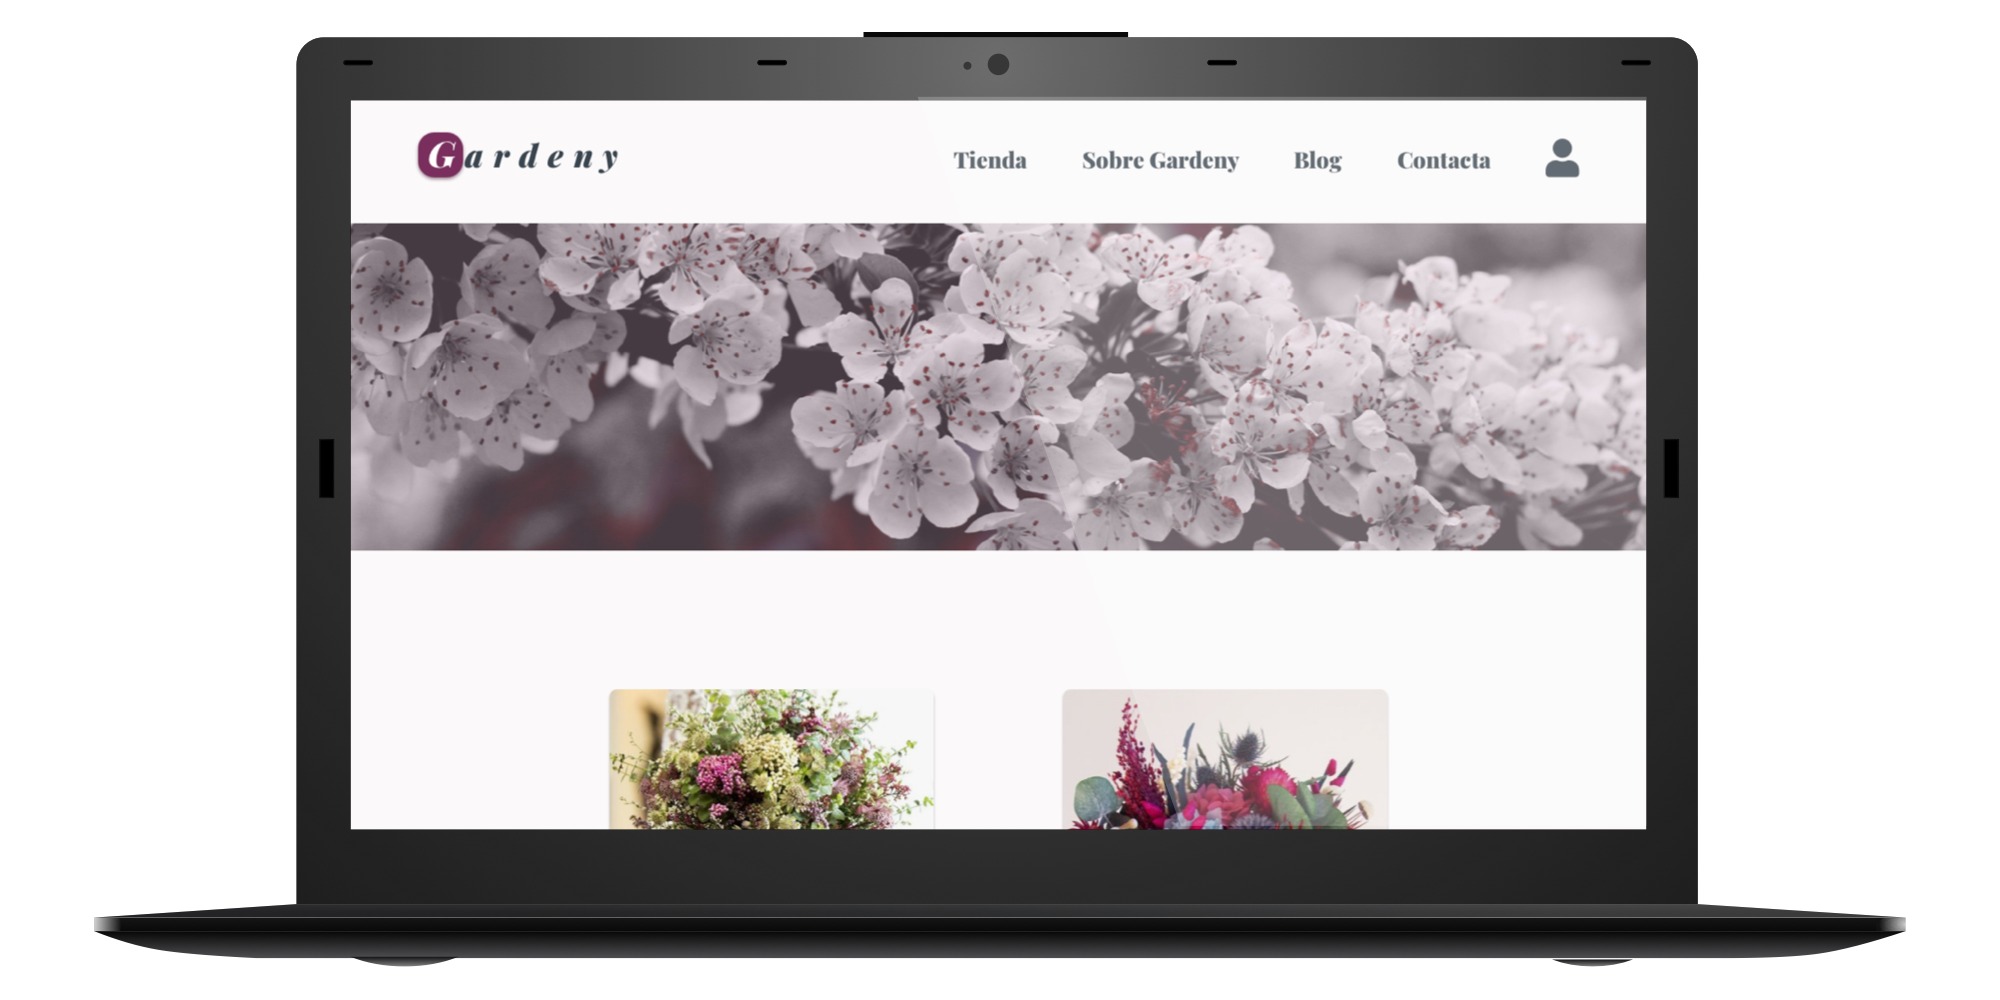 Gardeny website mockup